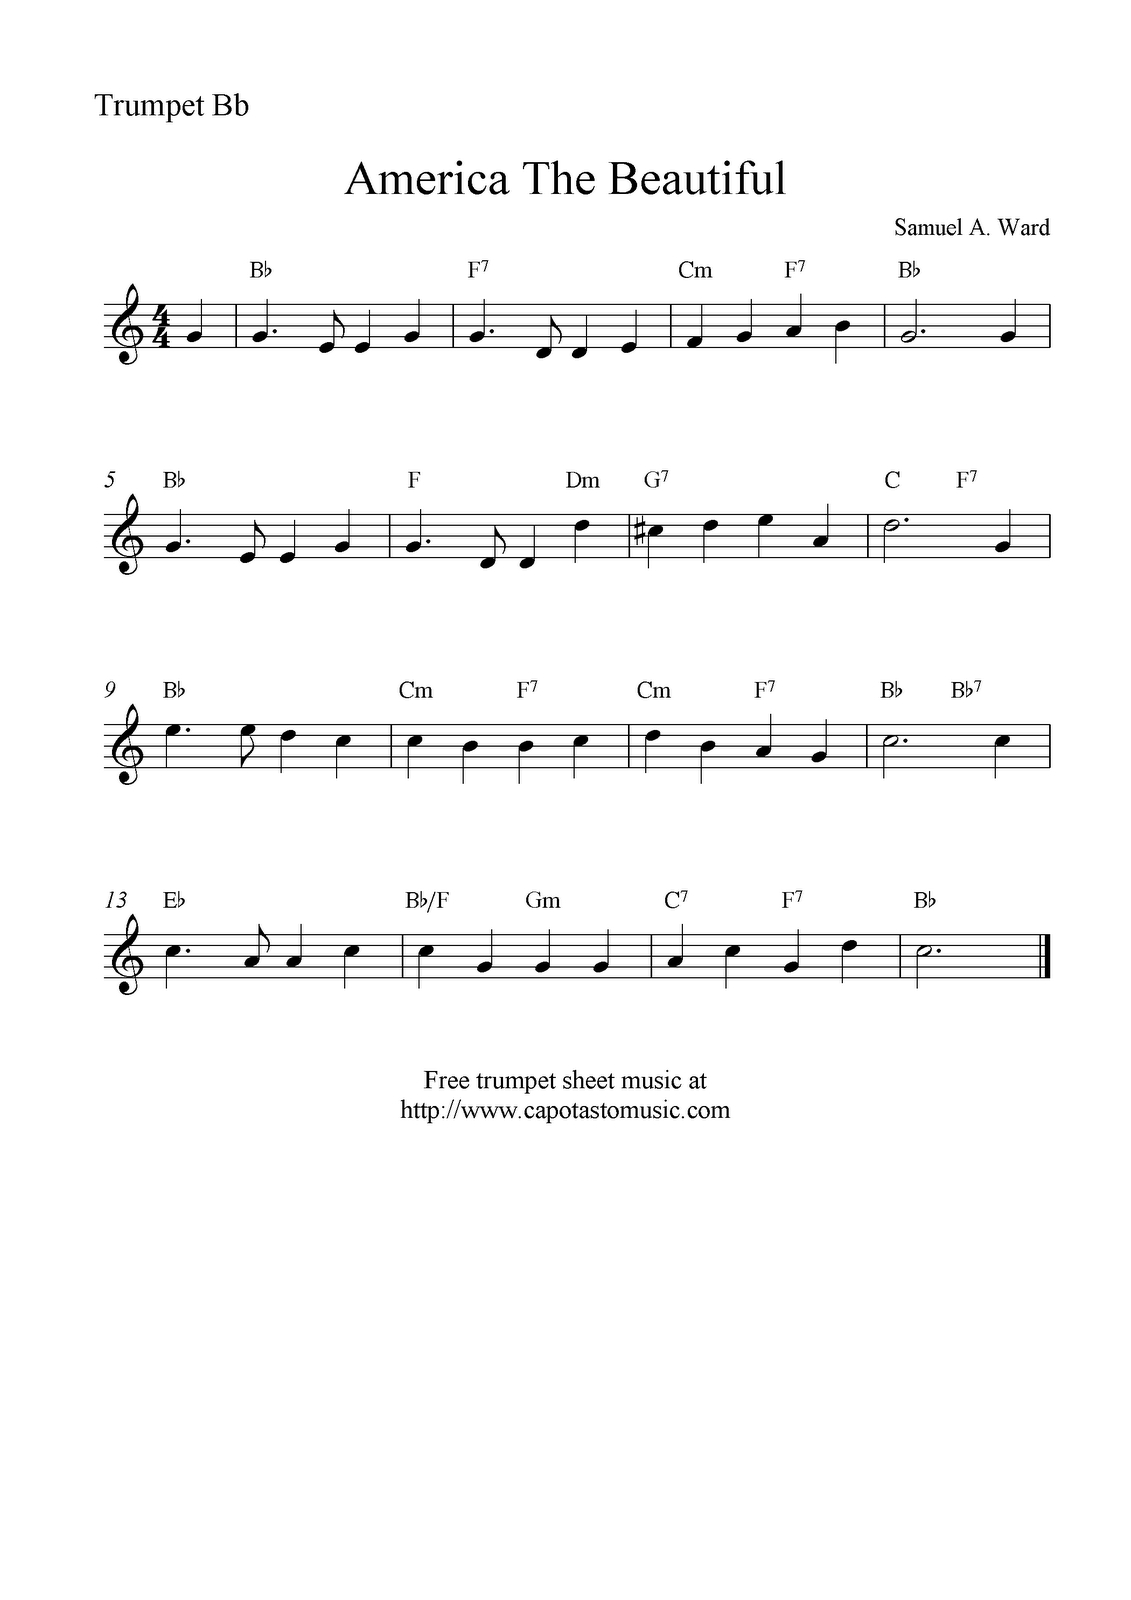 Free Sheet Music Scores: America The Beautiful, Free Trumpet Sheet - Free Printable Sheet Music For Trumpet